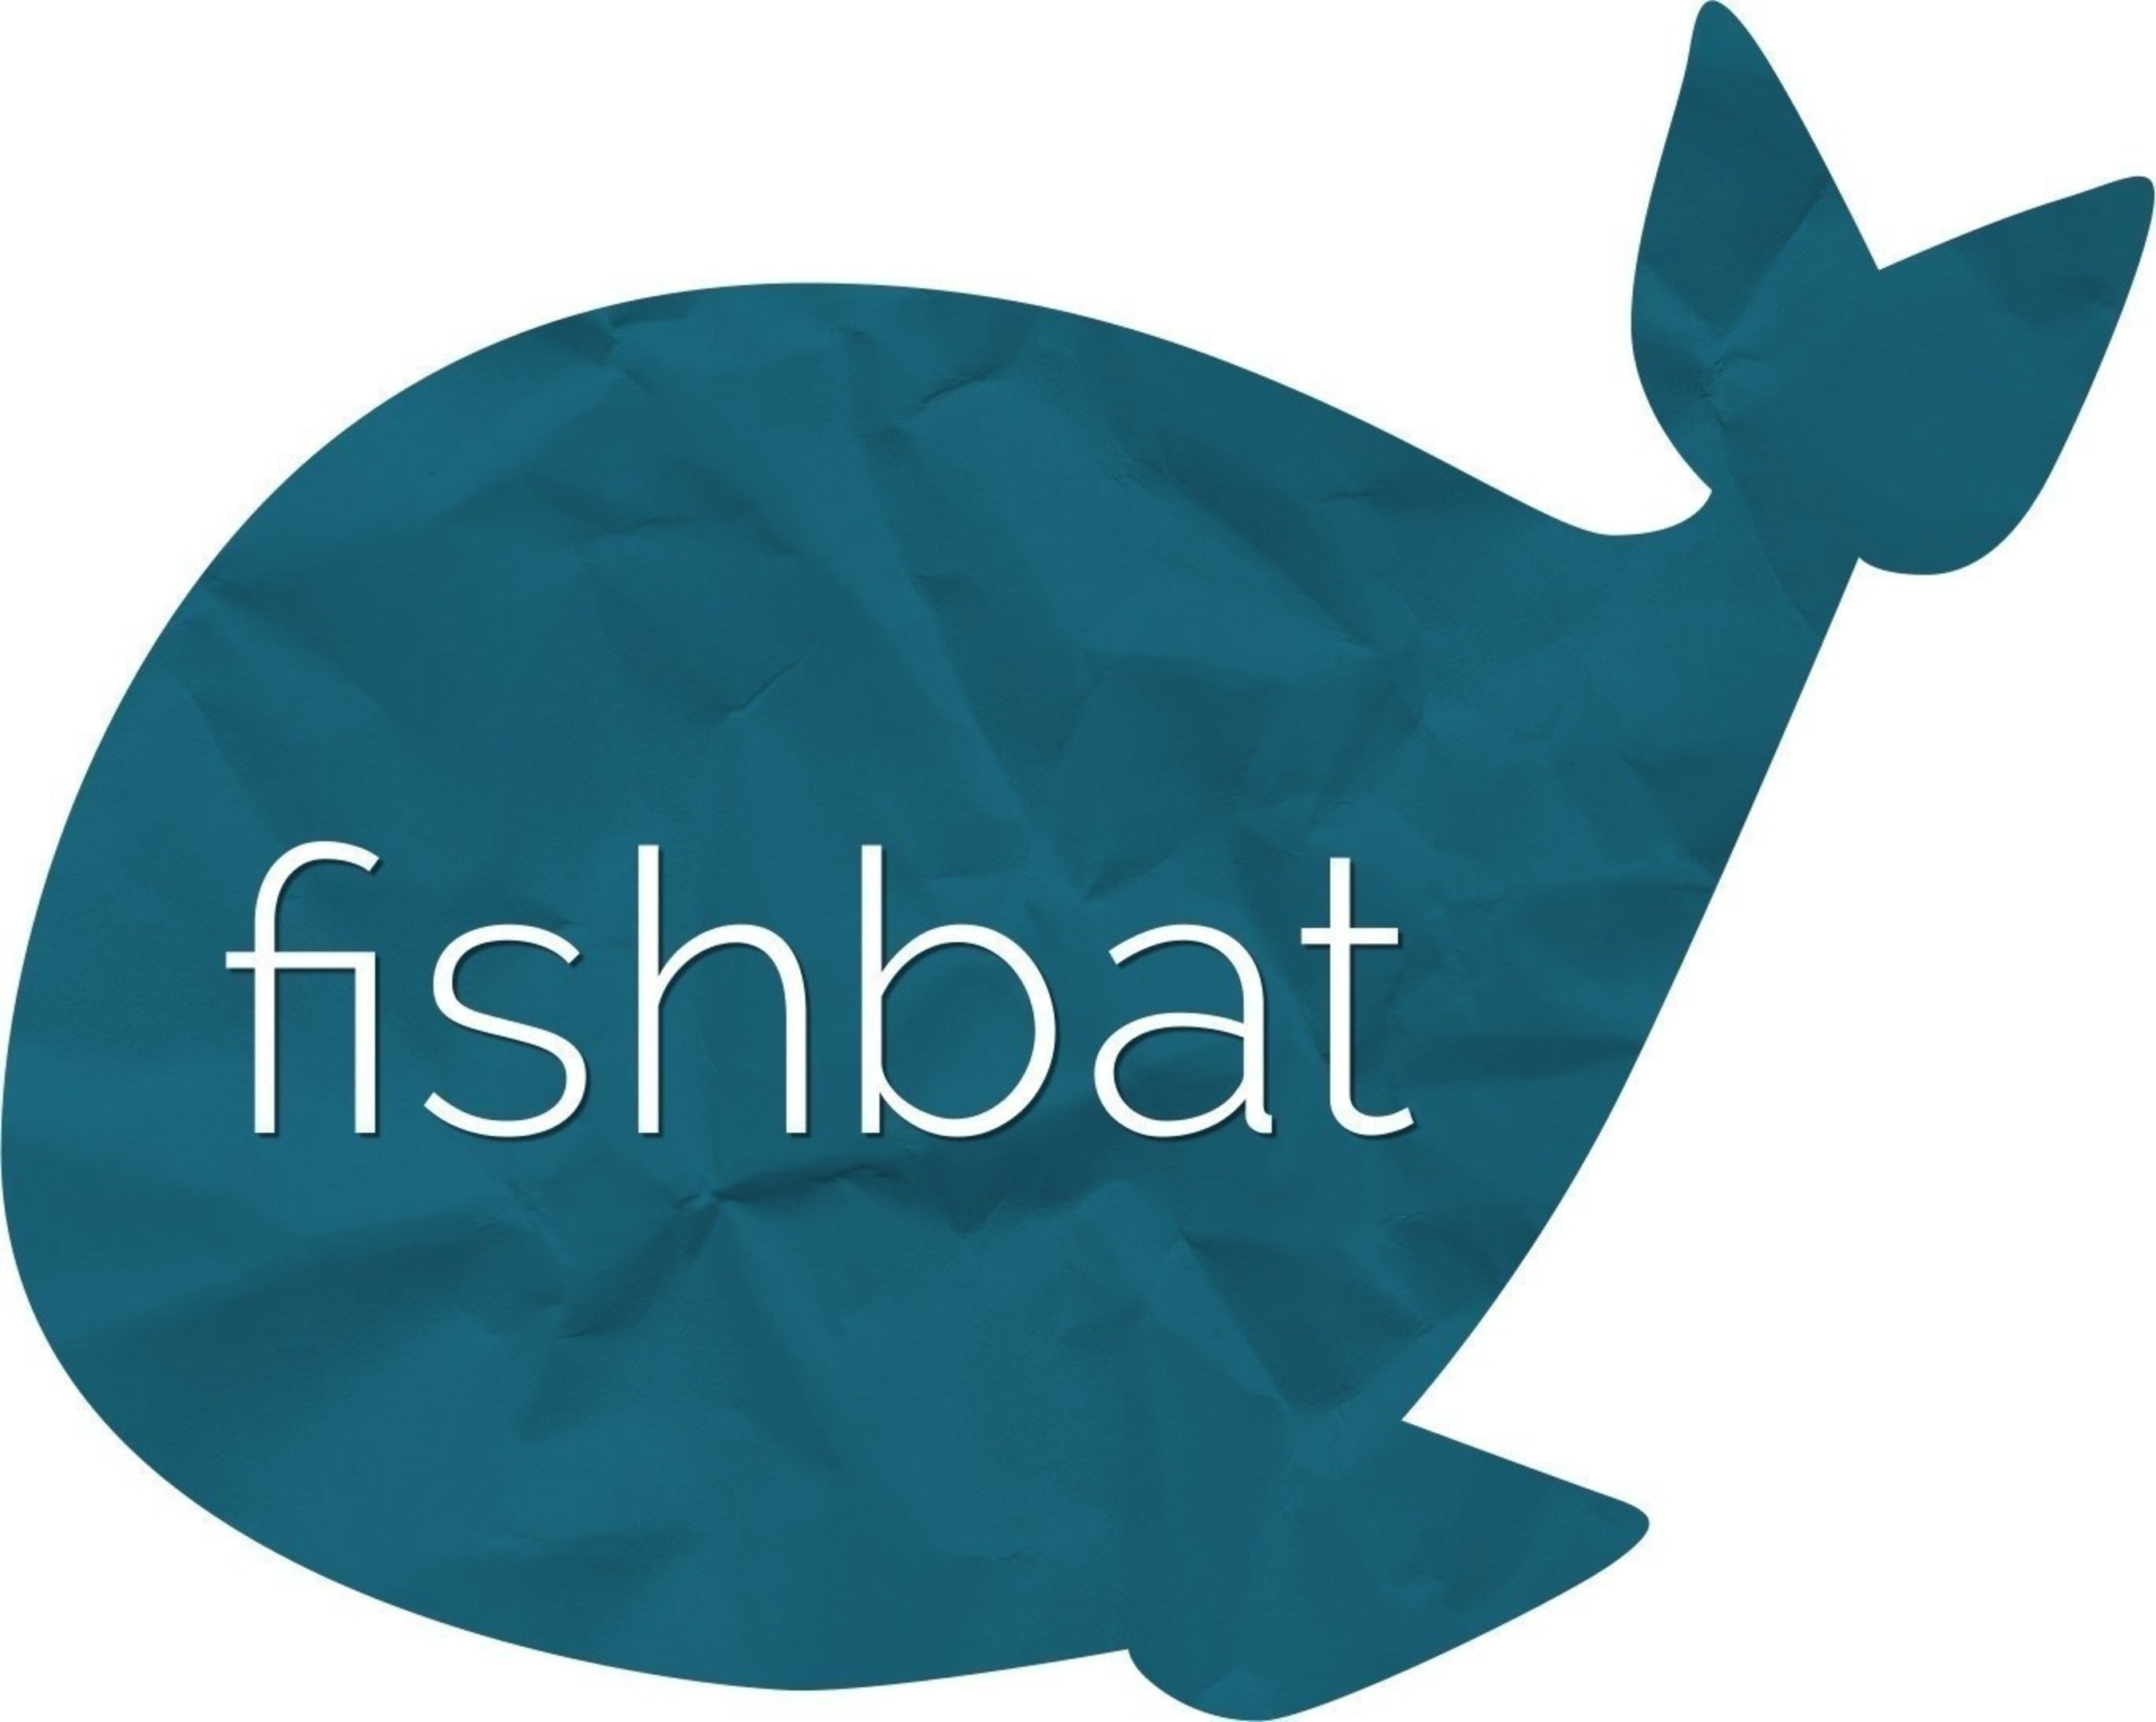 Online Marketing Company, fishbat, Discusses 4 Reasons Your Brand Will Benefit from a LinkedIn Company Page